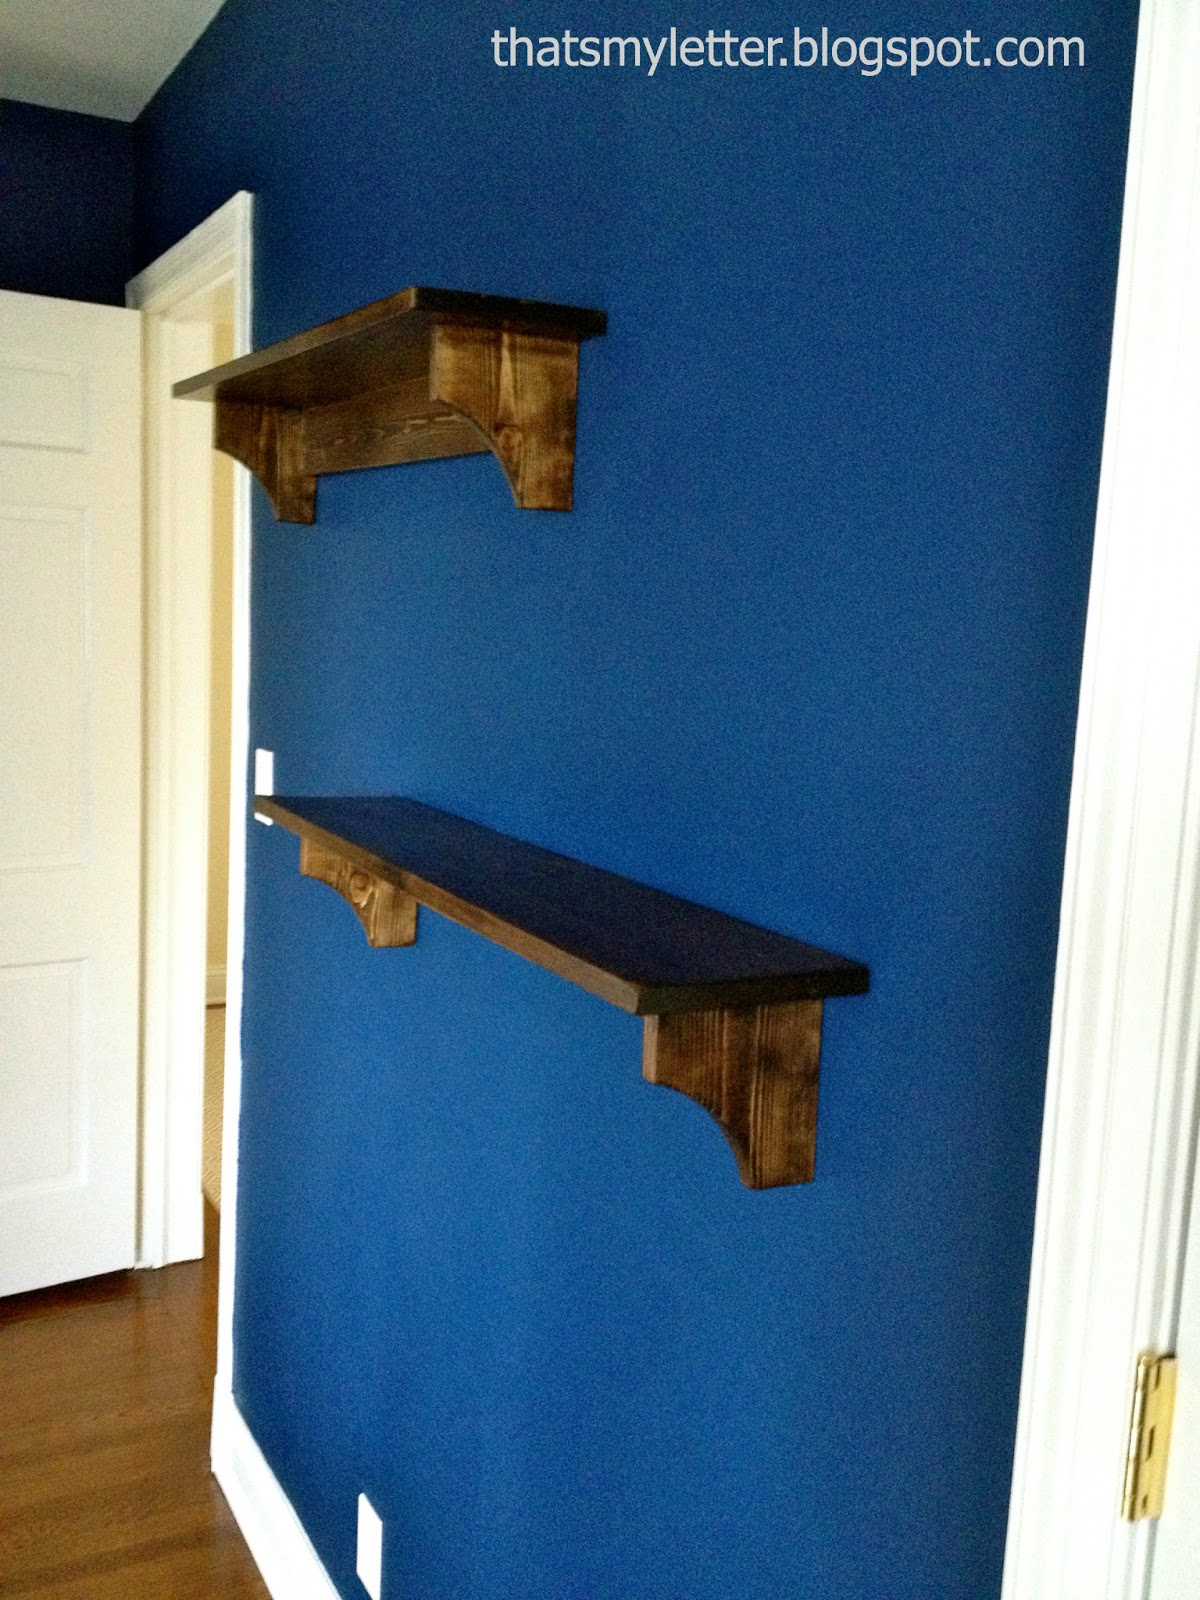 Wall picture shelves : Simple wall shelf plans